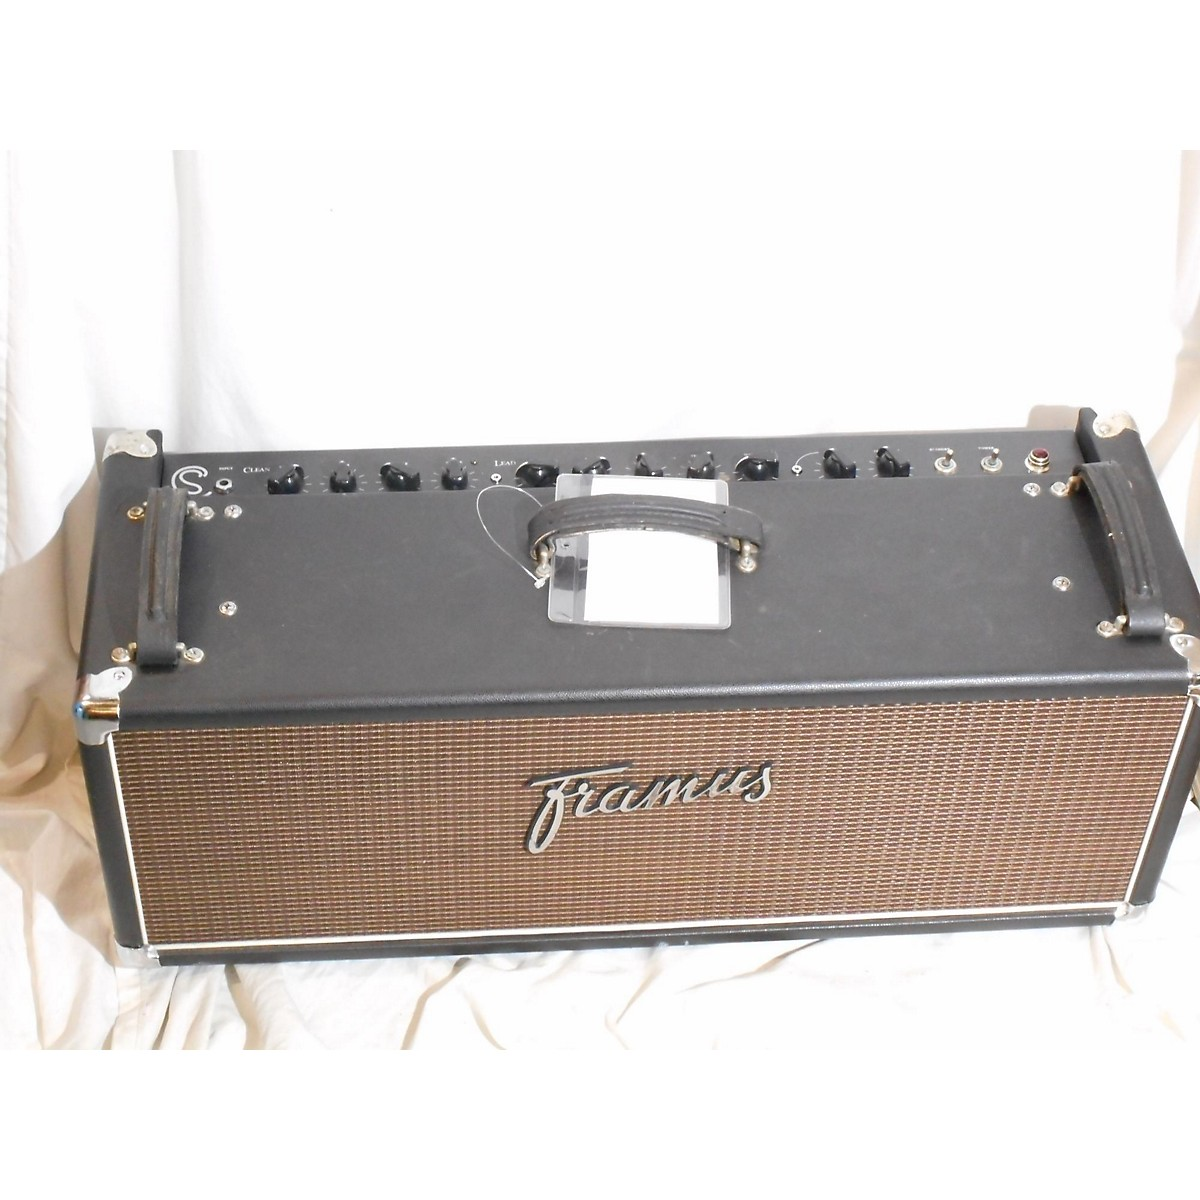 Framus CS 30 CB Tube Guitar Amp Head